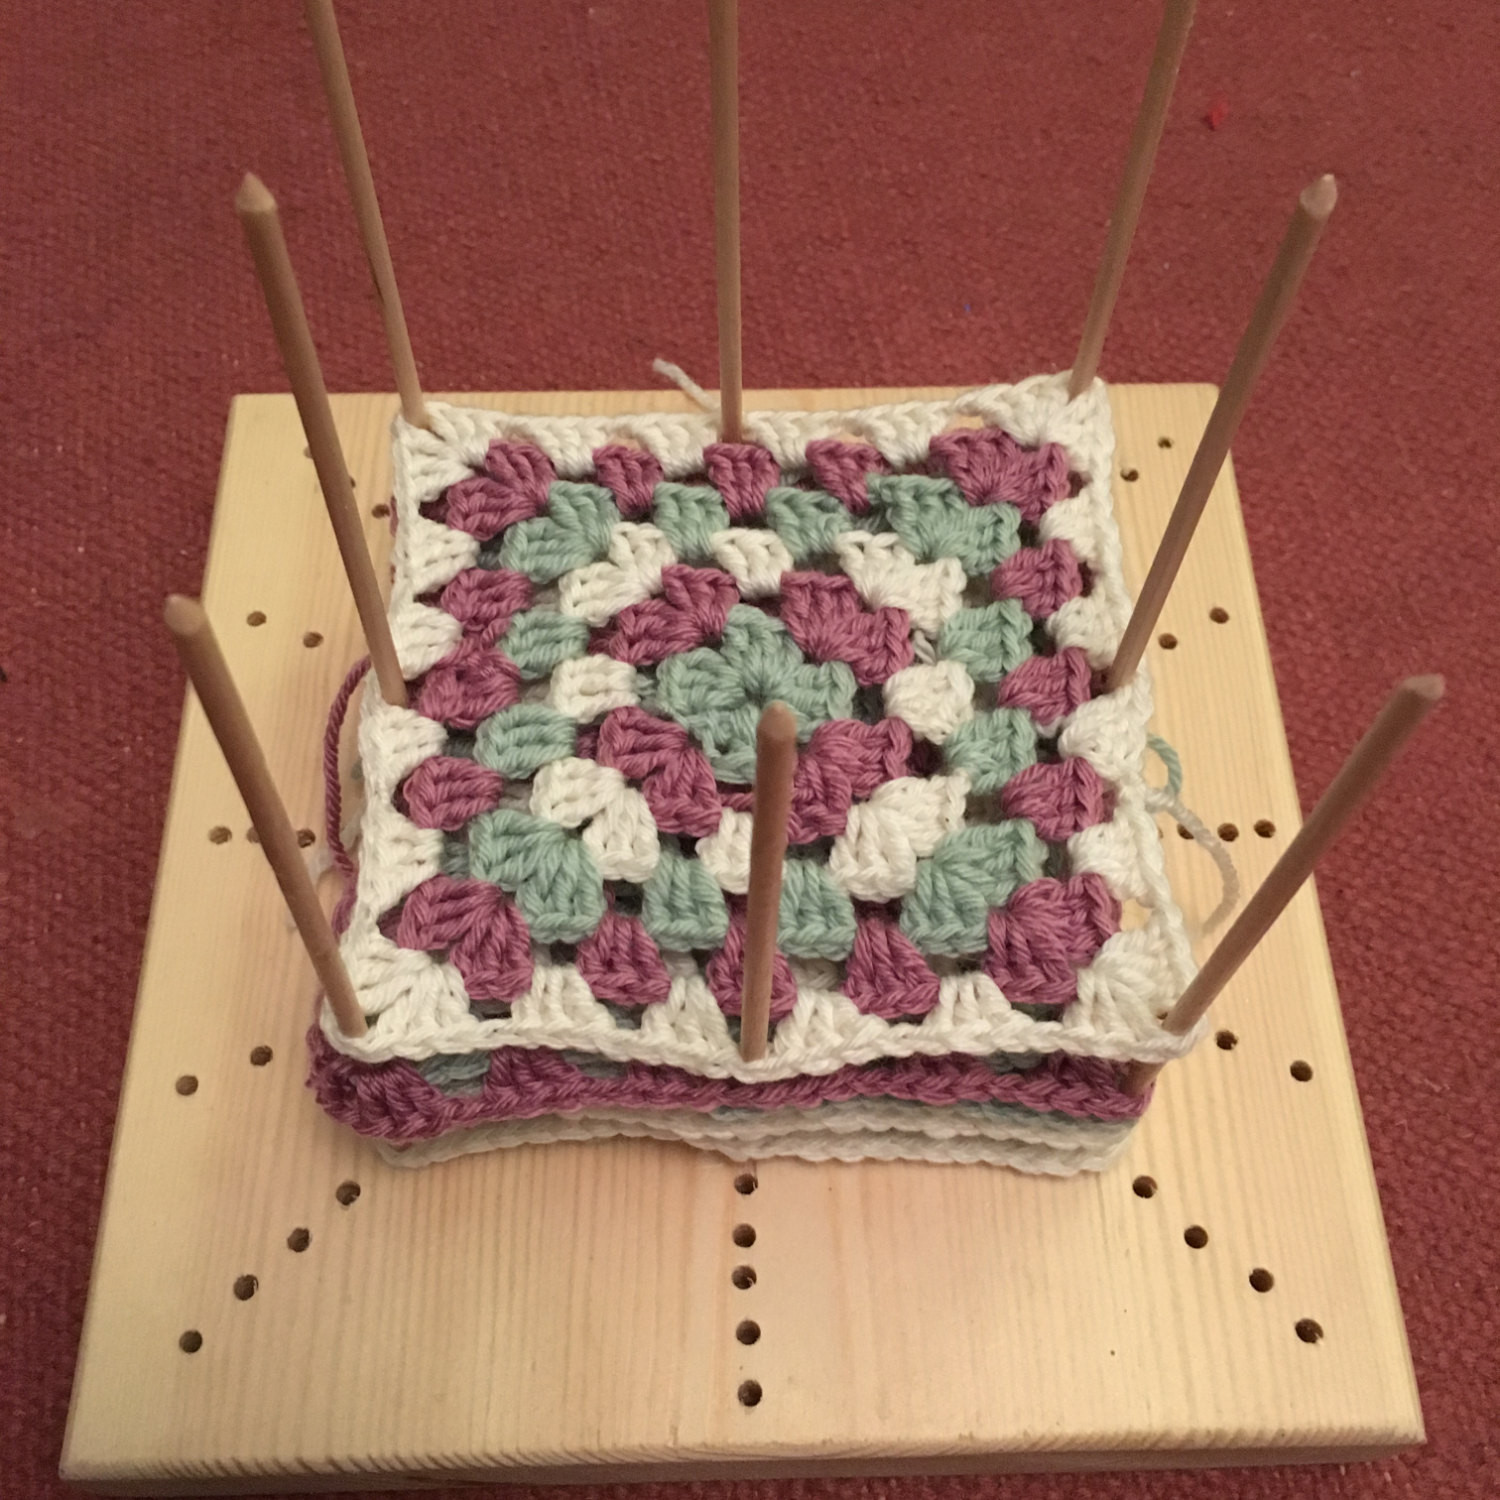 Crochet Blocking Board - I Like Crochet